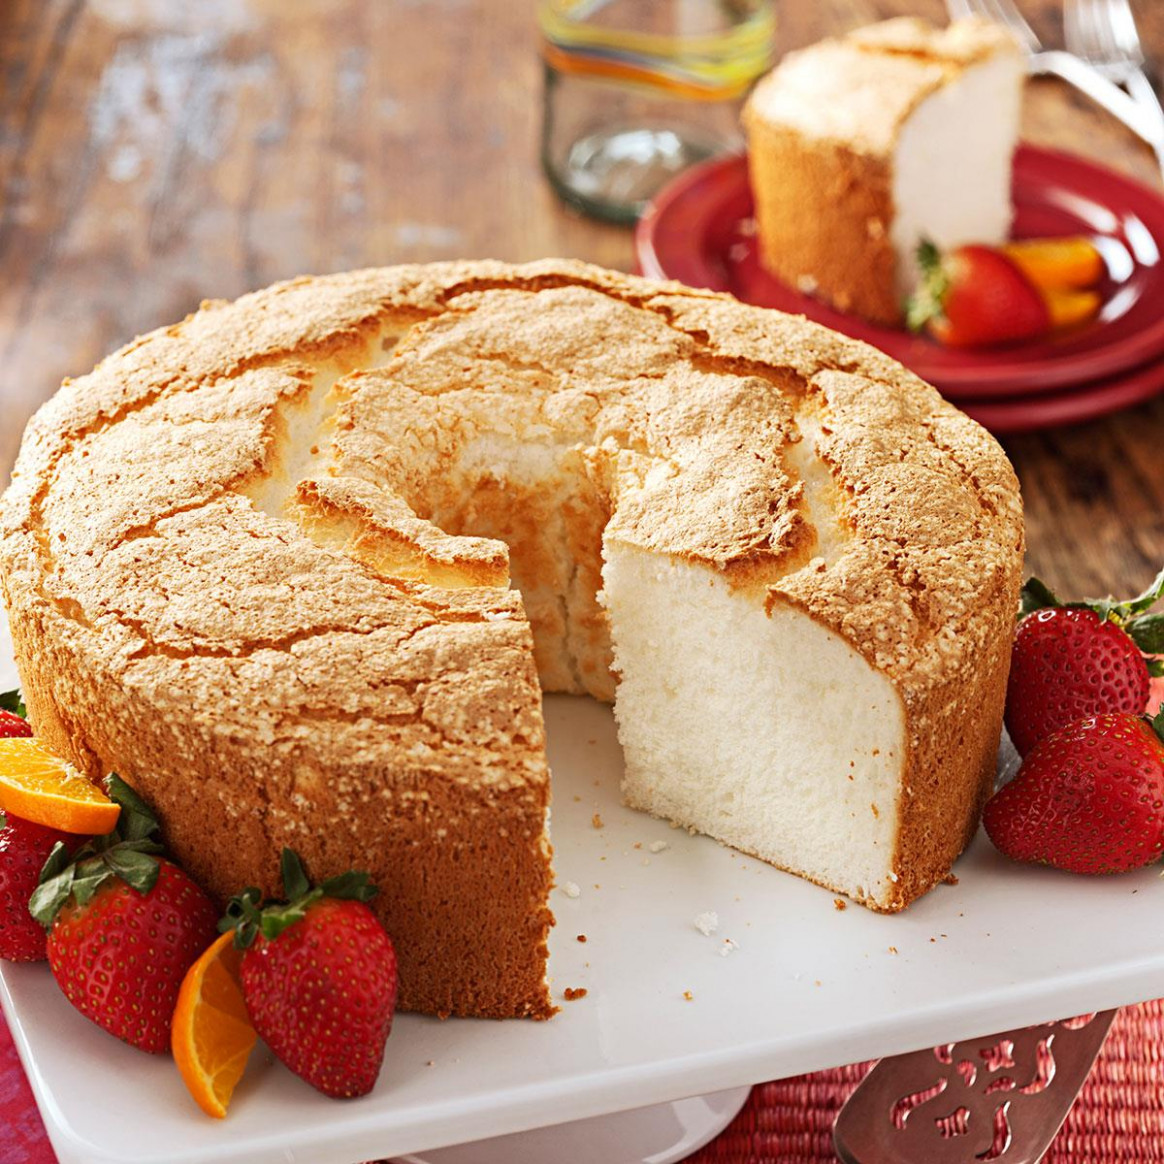 Best Angel Food Cake Recipe | Taste of Home - recipes with angel food cake